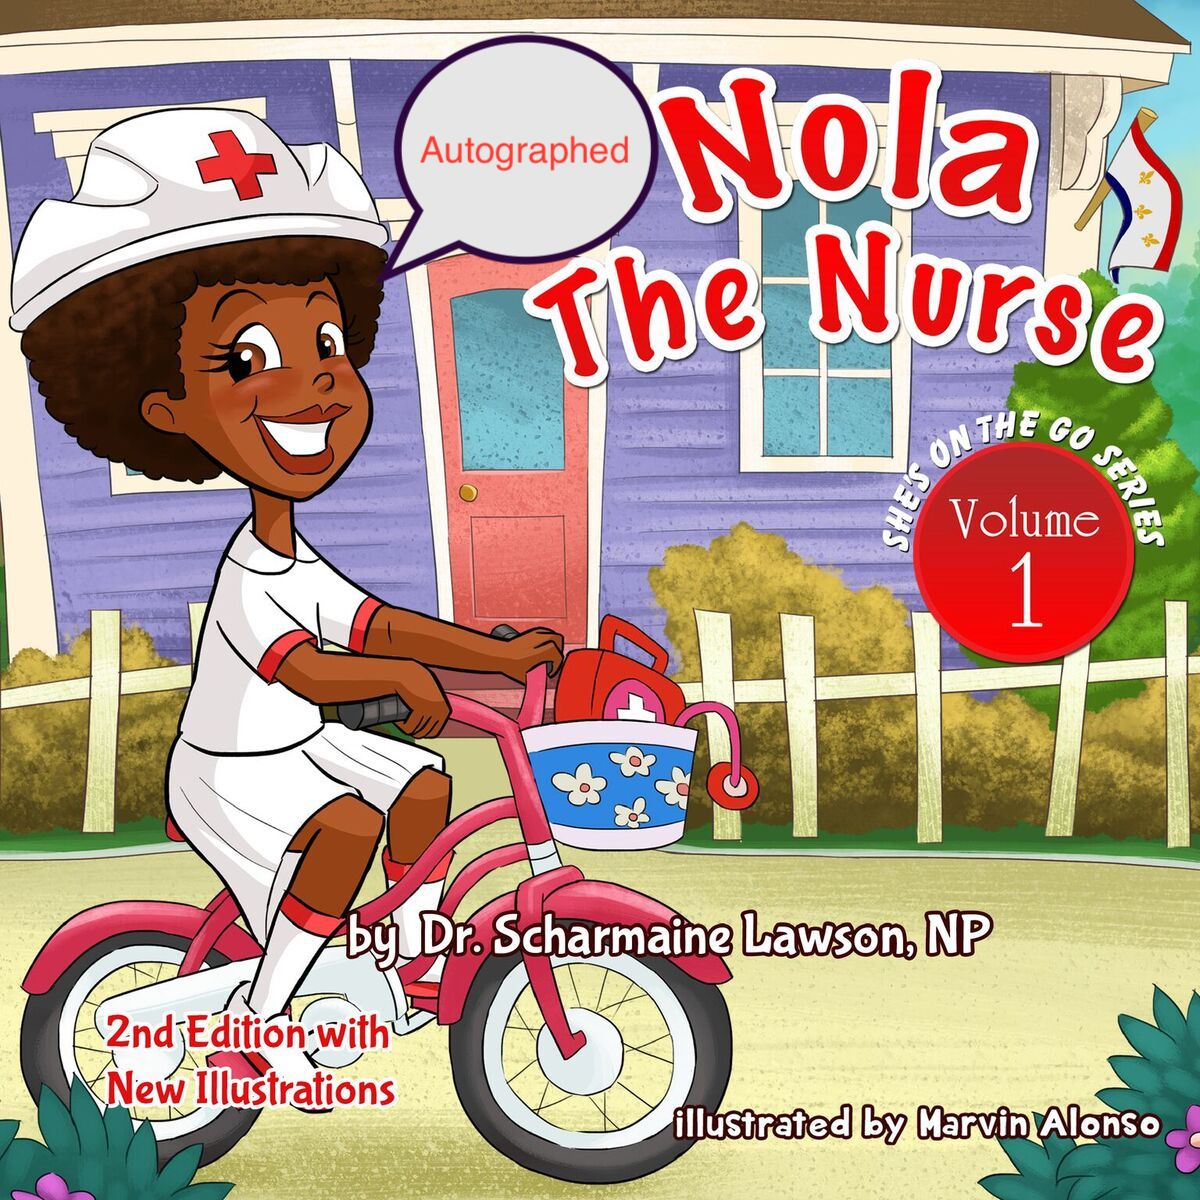 PBA: Nola The Nurse She's On The Go (Vol 1) AUTOGRAPHED Paperback